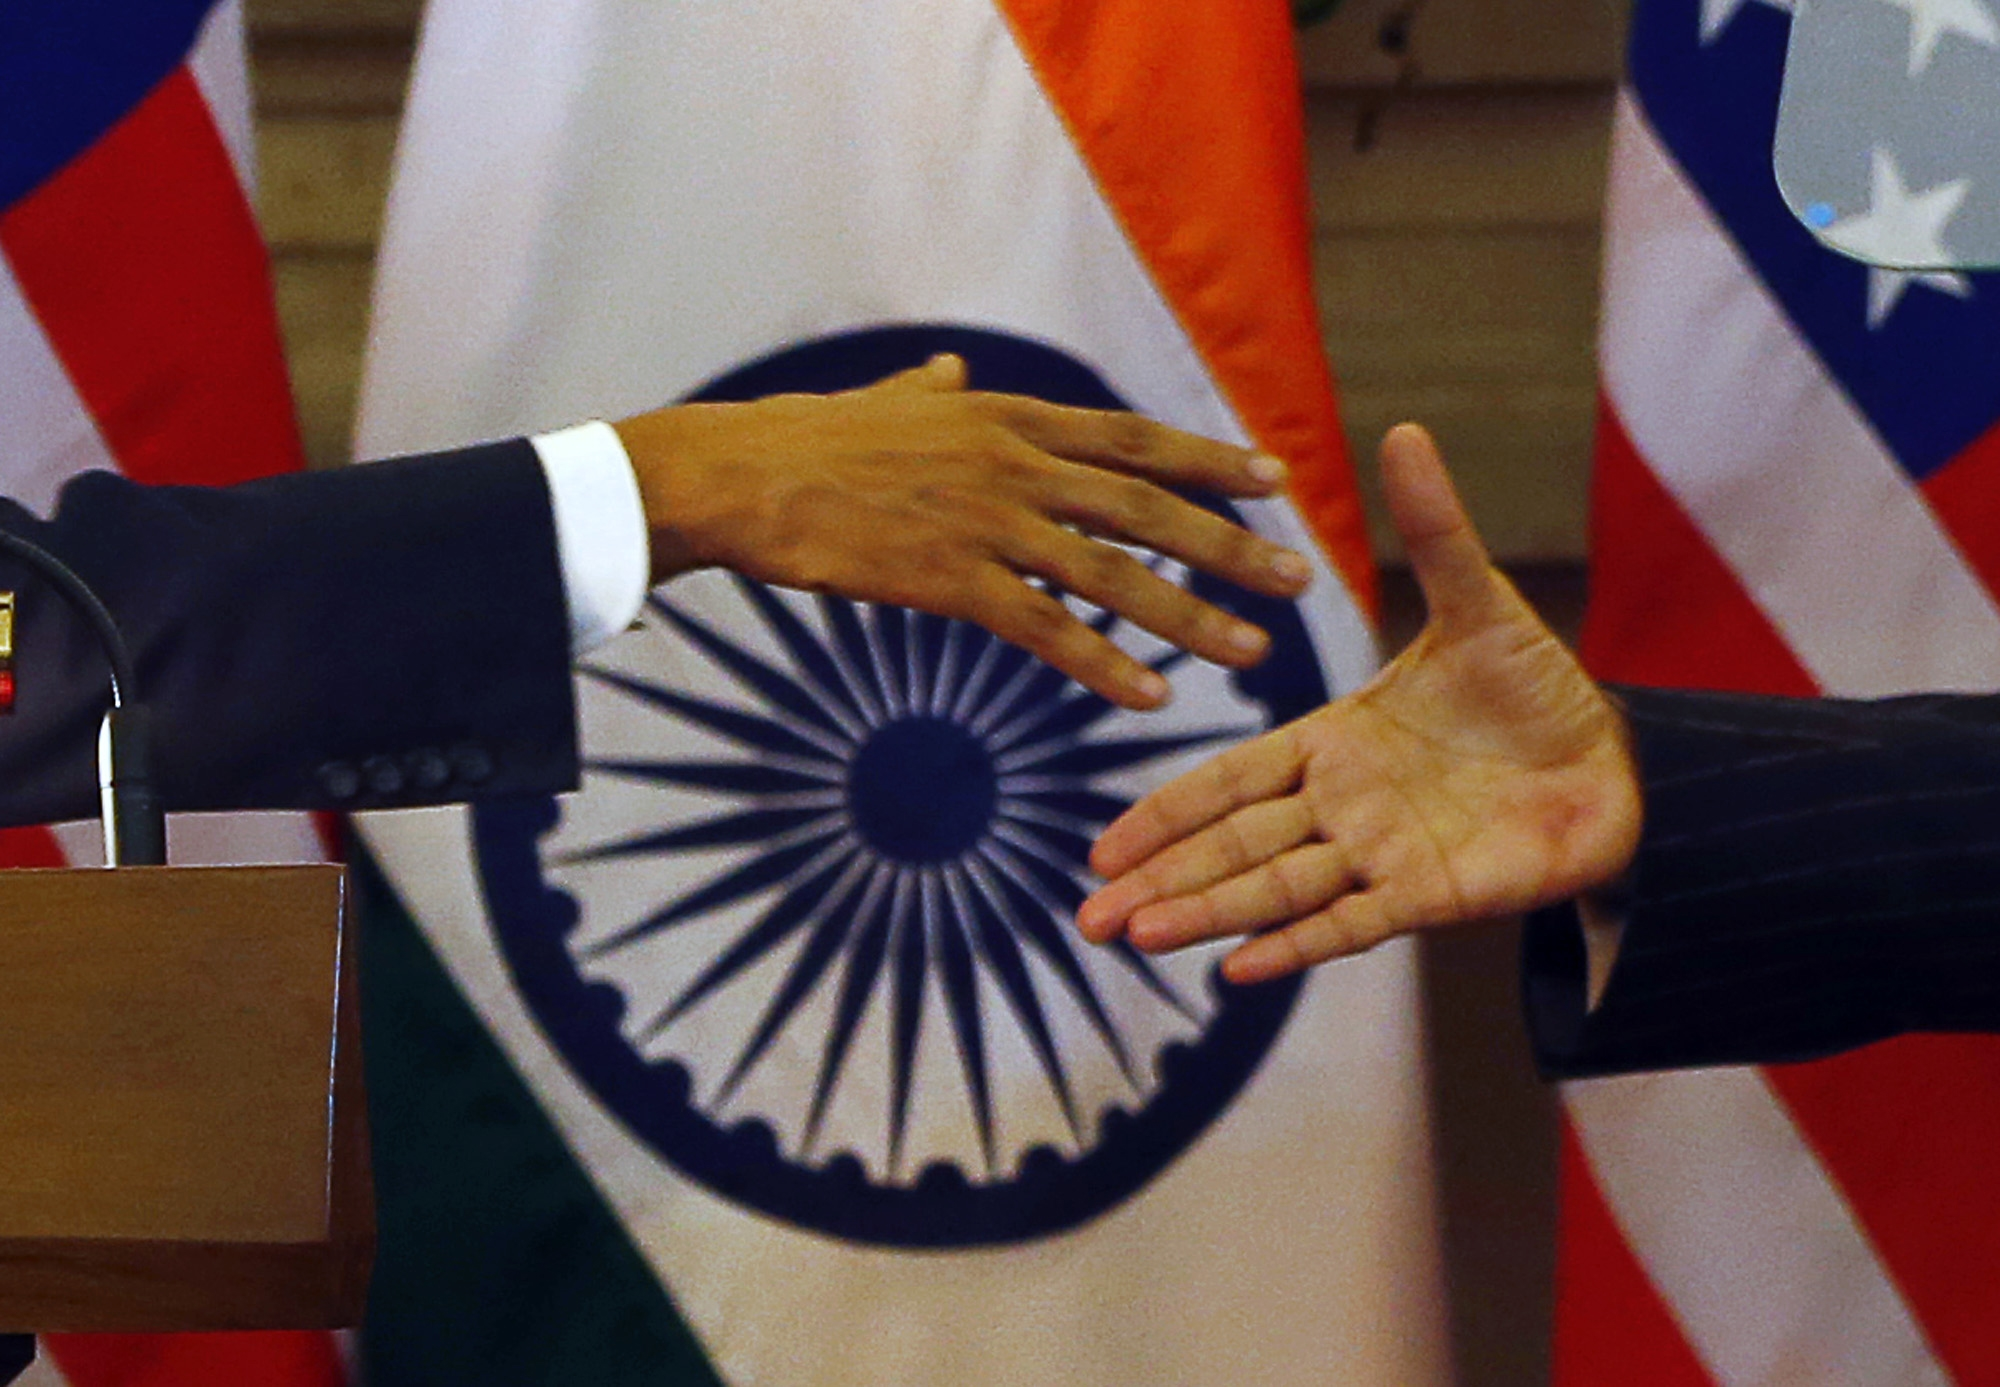 U.S. President Barack Obama, left and Indian Prime Minister Narendra Modi prepare to shake their hands after they jointly addressed the media after their talks, in New Delhi, India, Sunday, Jan. 25, 2015.